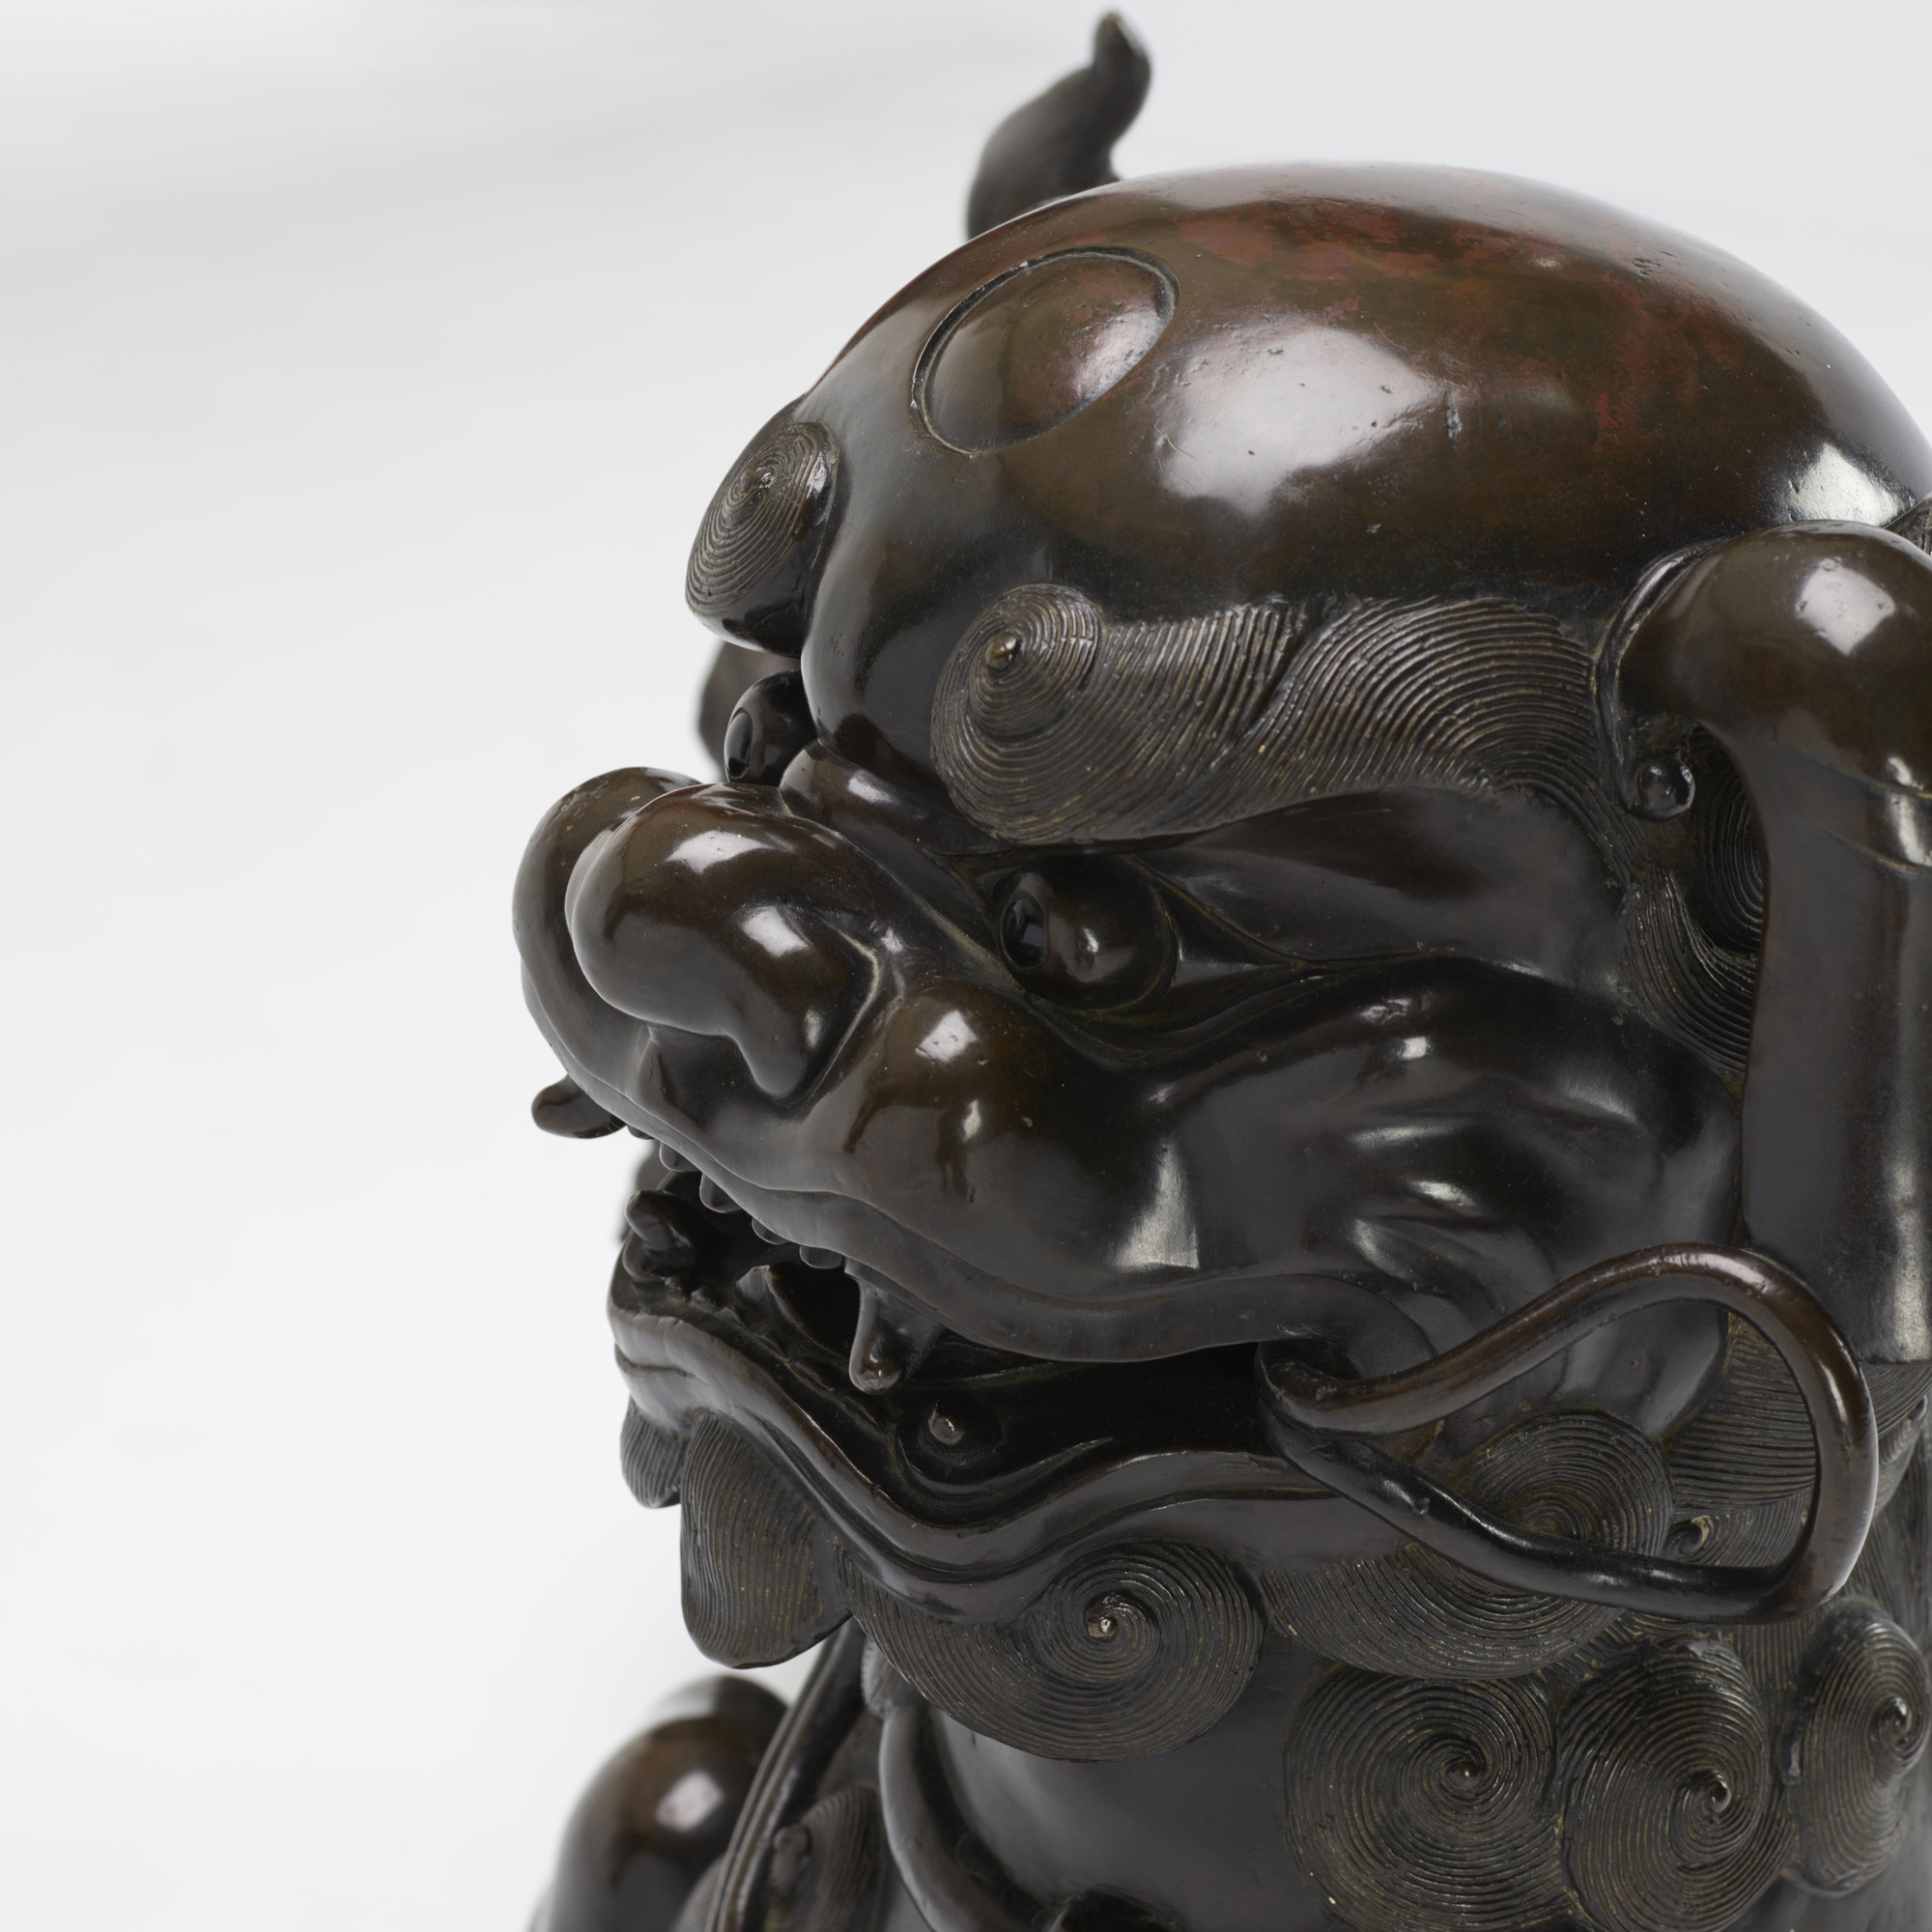 Intriguing America Chinese Foo Dog 372 3 Living July 2016 Chinese Foo Dog Incense Burner Wright Auction Chinese Foo Dog Club Sale houzz 01 Chinese Foo Dog